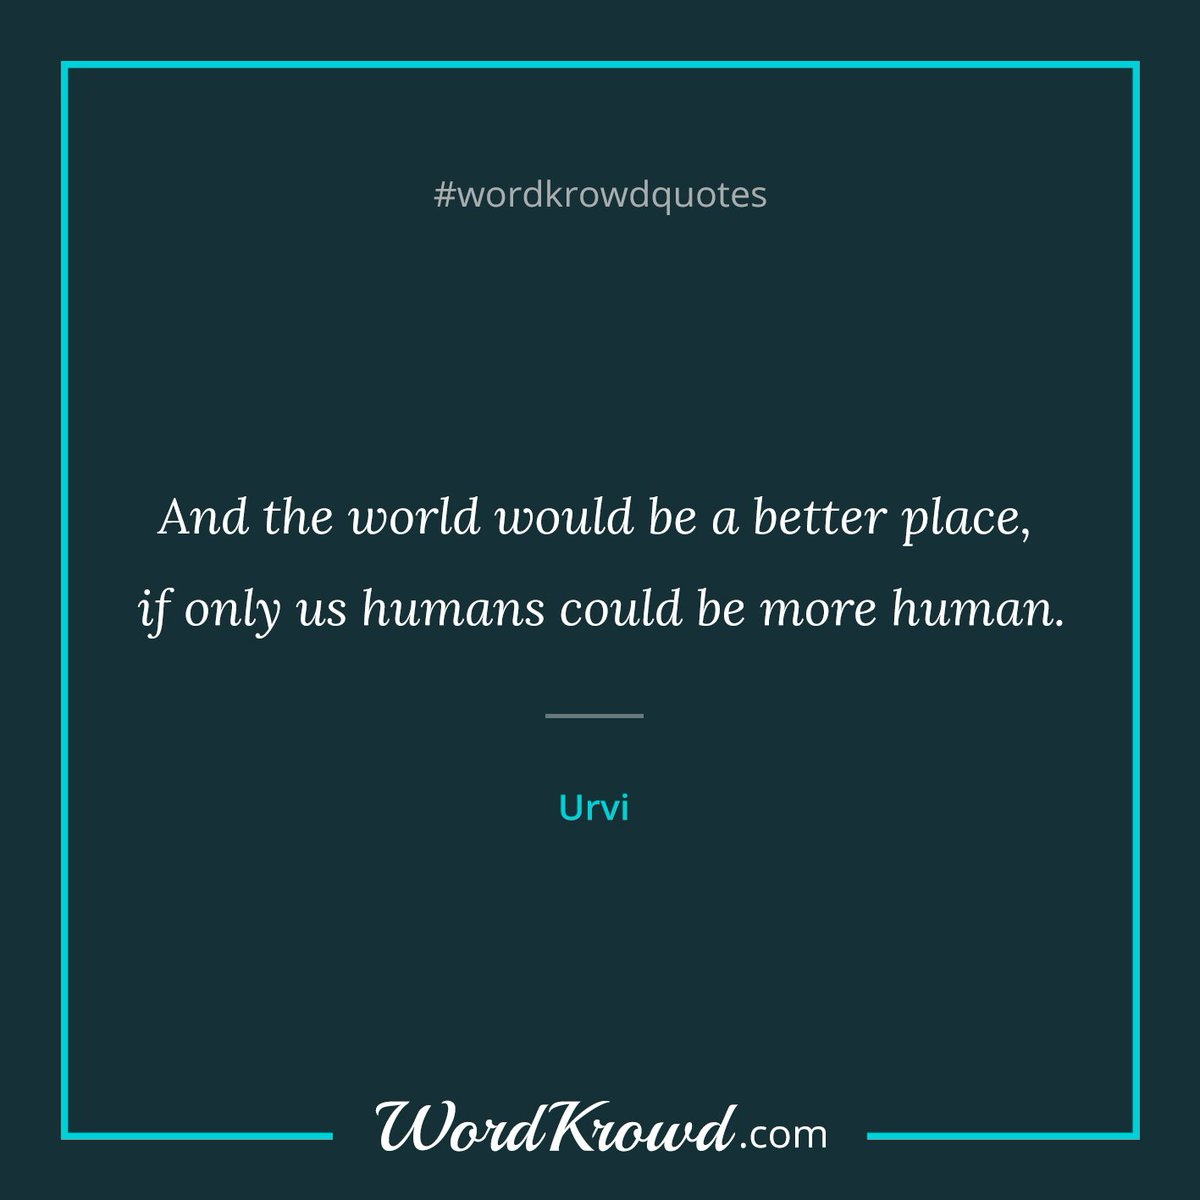 "Thoughtful Quotes Wordkrowd On Twitter ""quoteurvi On Wordkrowdmore Thoughtful"